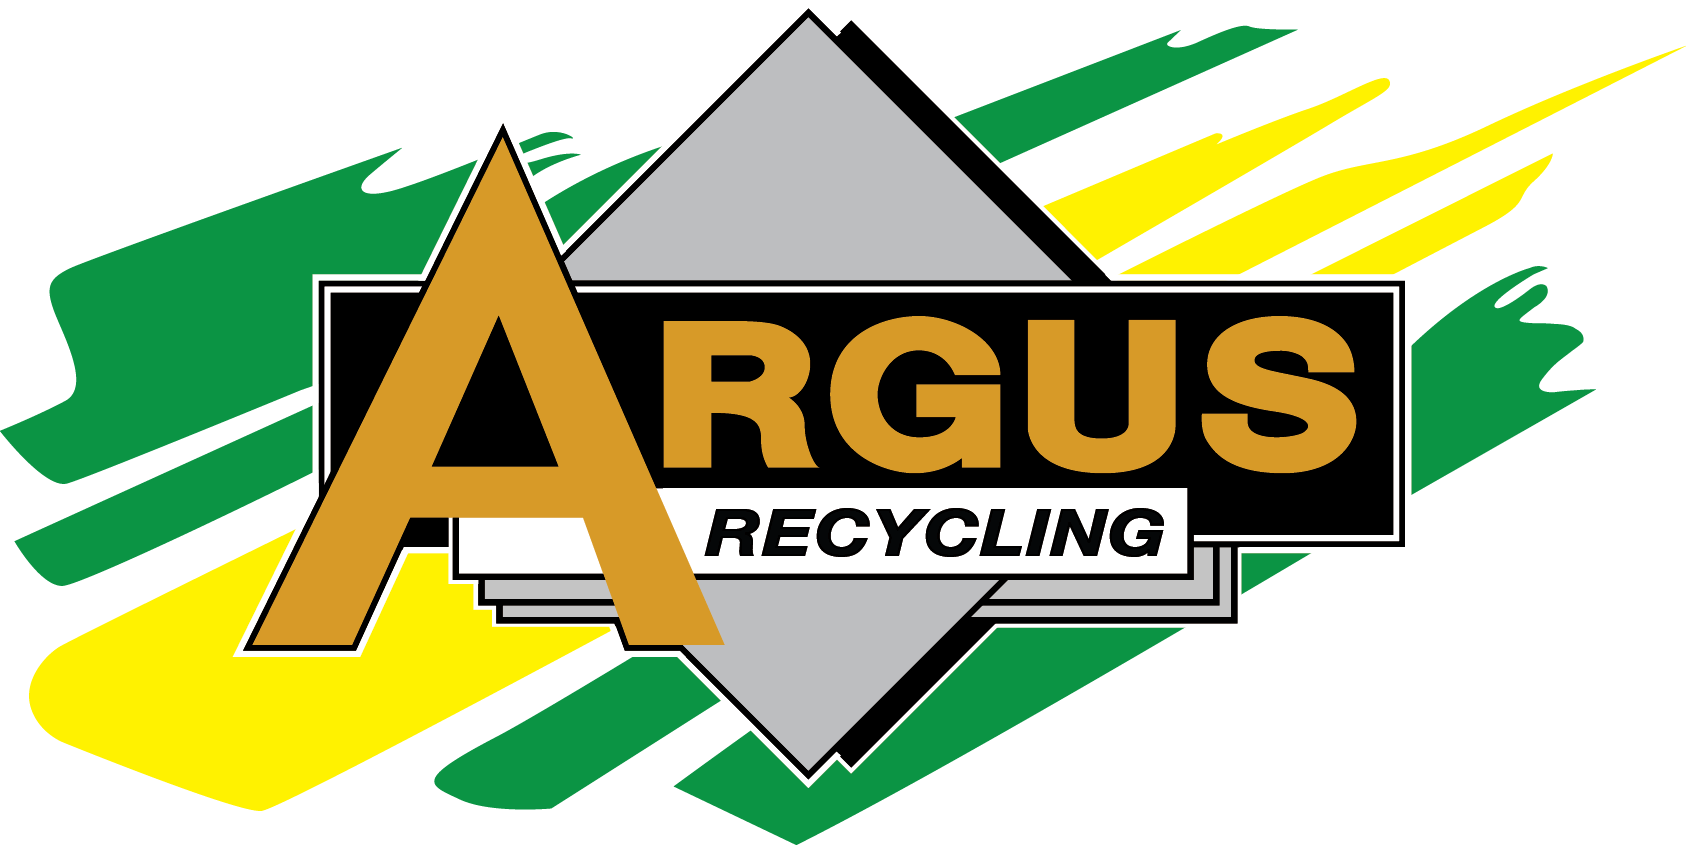 Argus Recycling